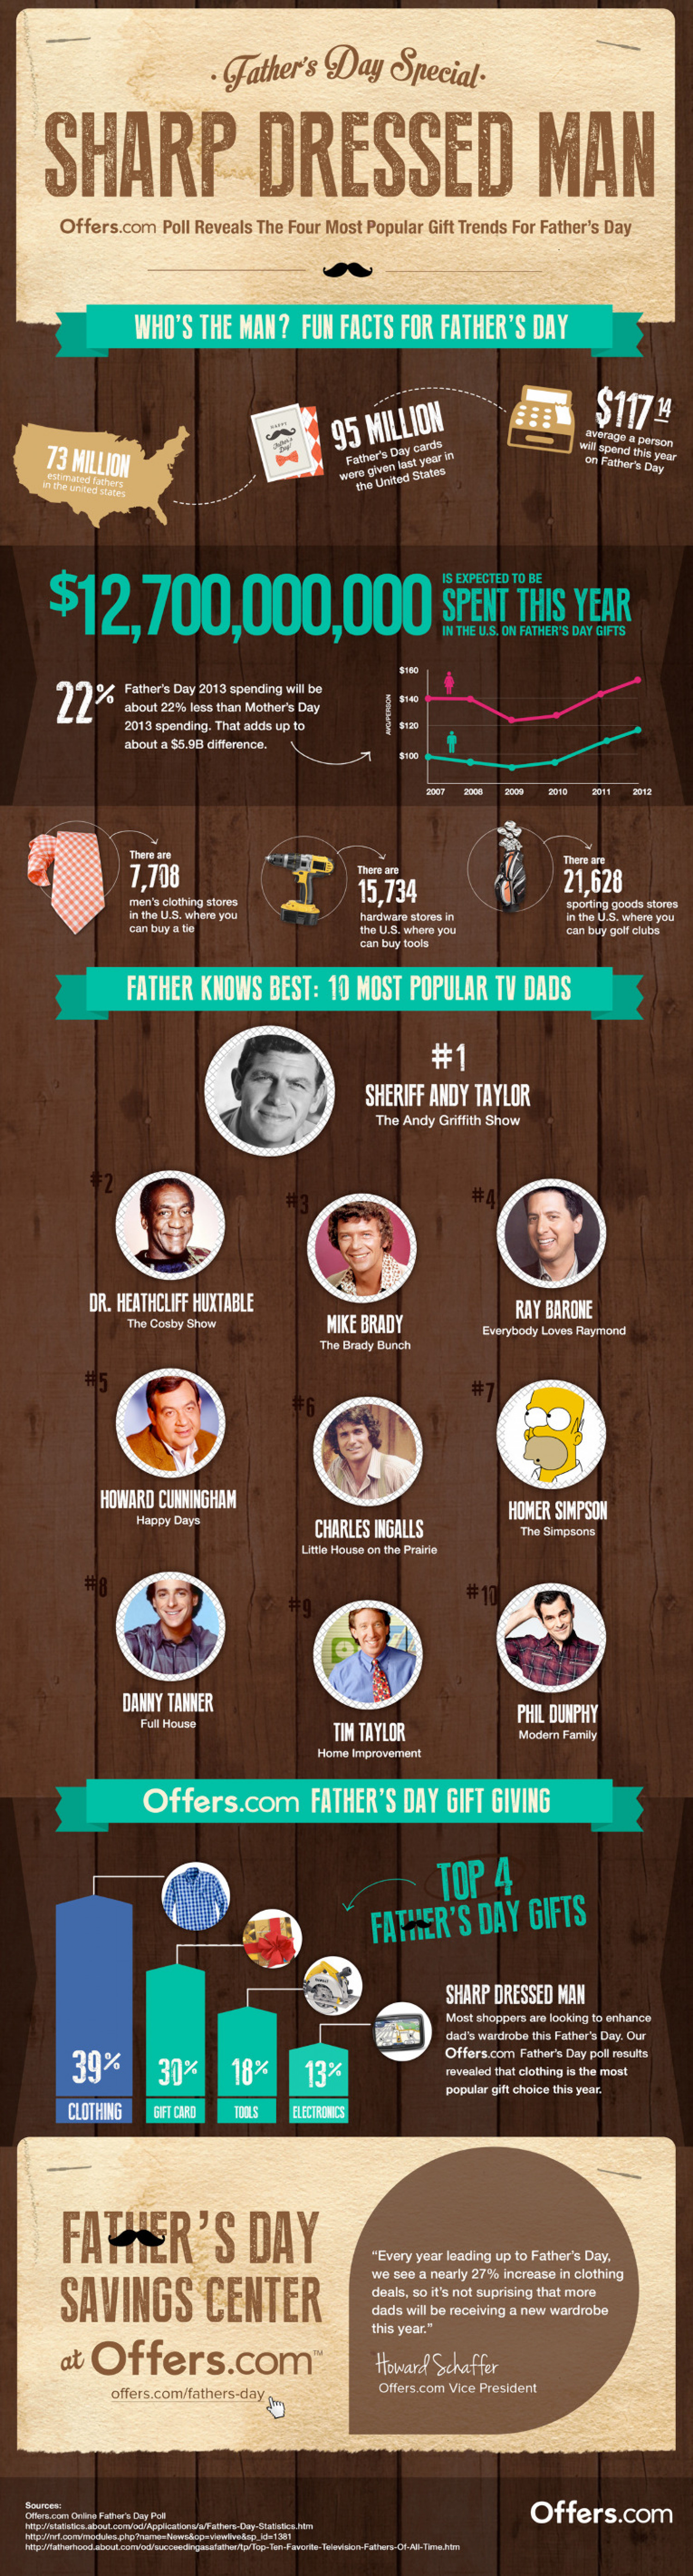 Top Gifts for Father's Day Infographic